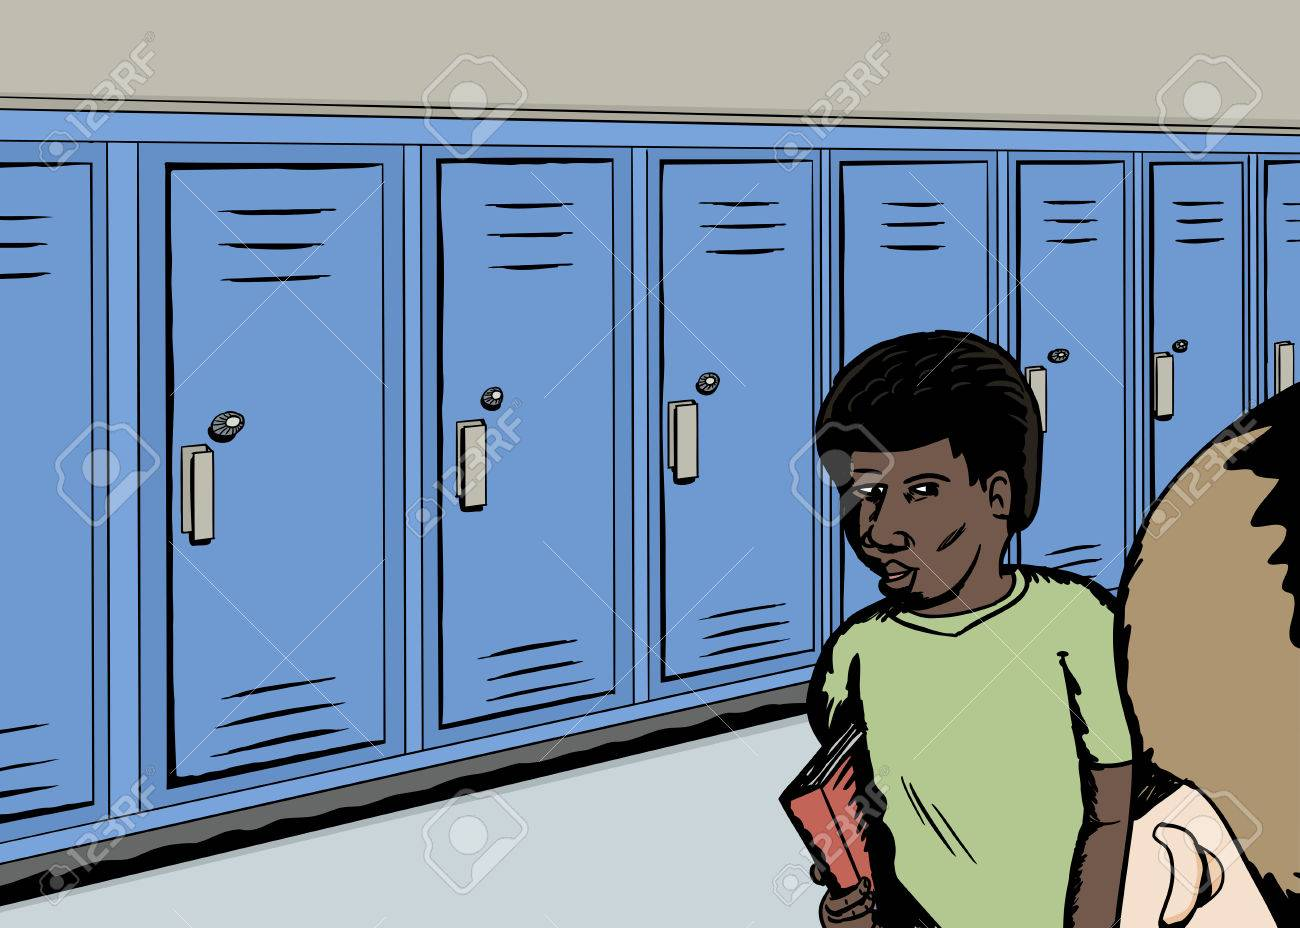 Cartoon Of Students In Hallway With Row Of Blue Lockers Royalty Free Cliparts Vectors And Stock Illustration Image 43674665